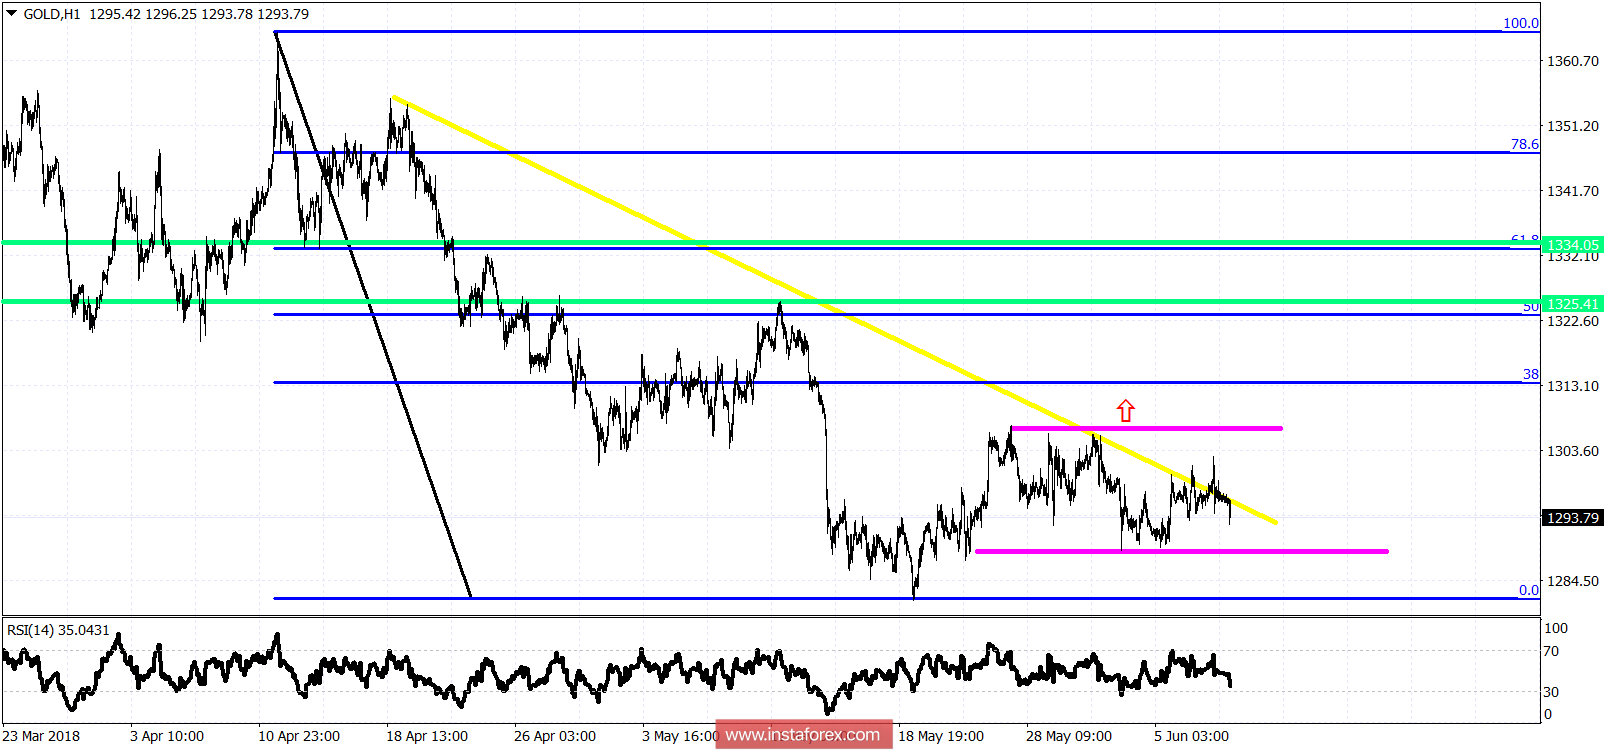 Technical analysis on Gold for June 8, 2018